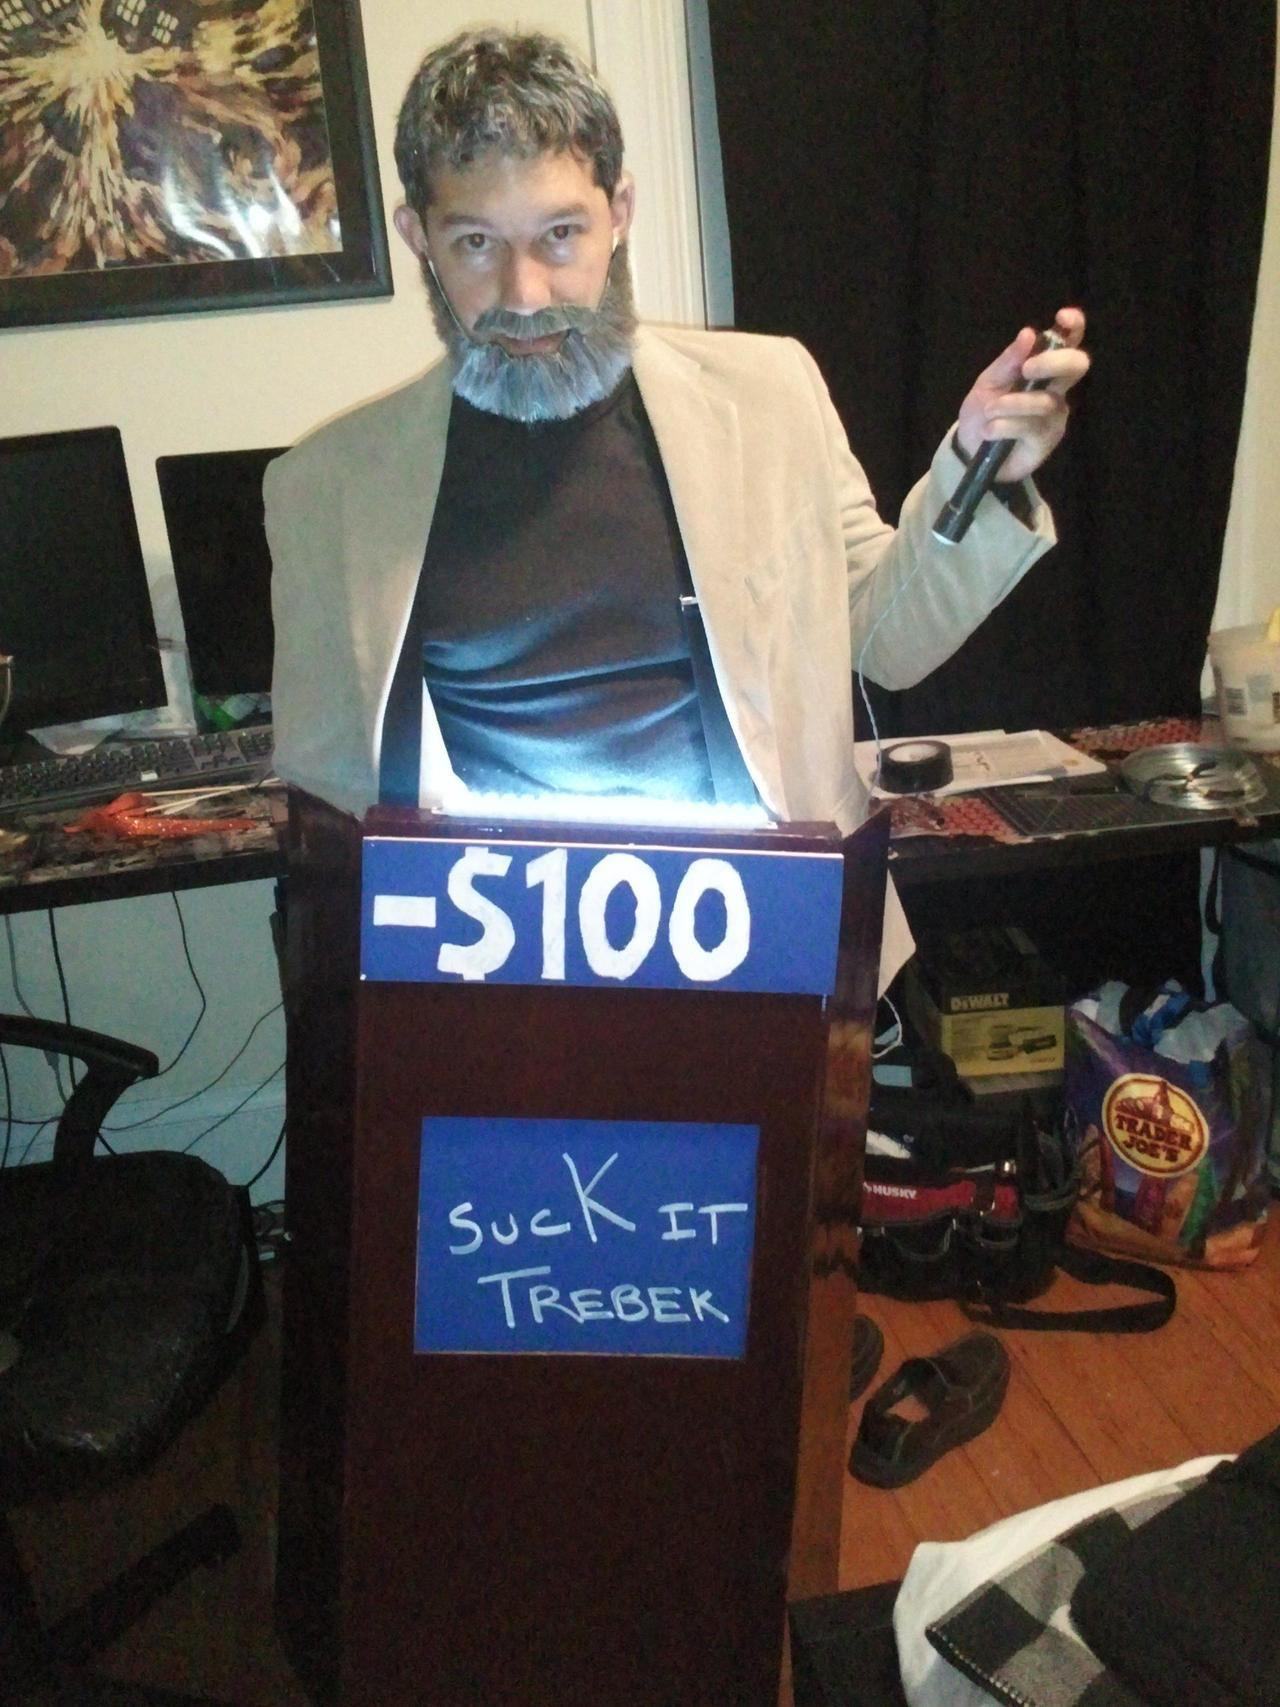 "theclearlydope:  Alex Trebek: Mr. Connery, go ahead. Sean Connery: The day is mine! I'll take Famous Titties for 400. Alex Trebek: Titles, Famous Titles. Sean Connery: Damn! Alex Trebek: And the answer is: This movie title is taken from the name of the book ""Gone With The Wind."" Mr. Sean Connery.  Sean Connery: Dolly Parton! Alex Trebek: Titles, Mr. Connery. Not titties.  Sean Connery: Not a fan of the ladies, are you Trebek?"